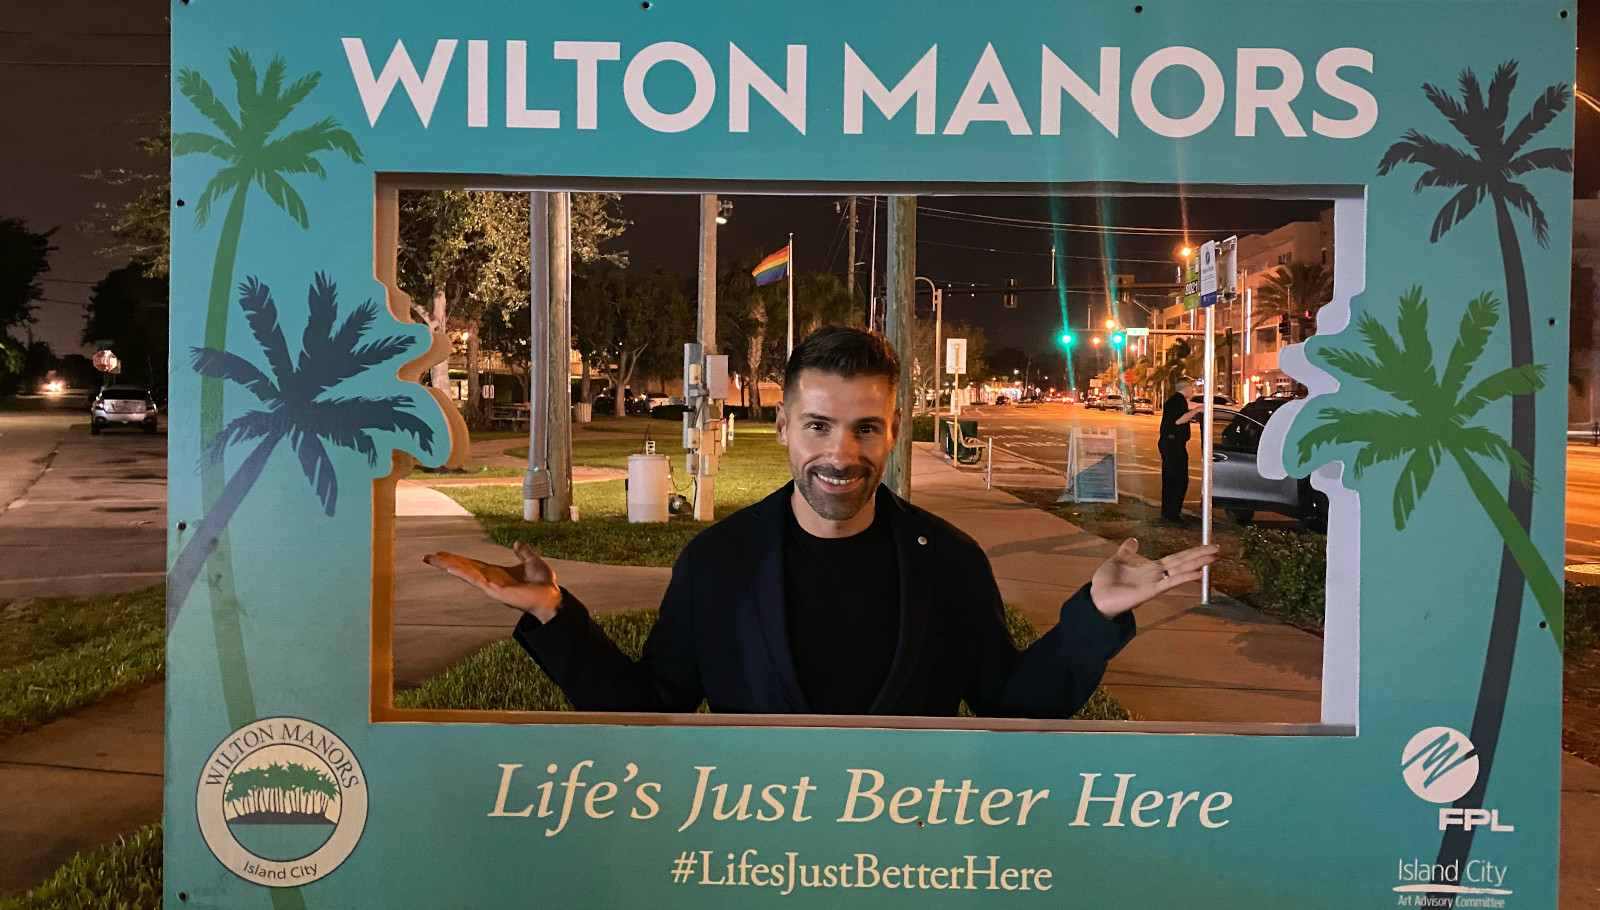 Wilton manor gay sign in Fort Lauderdale